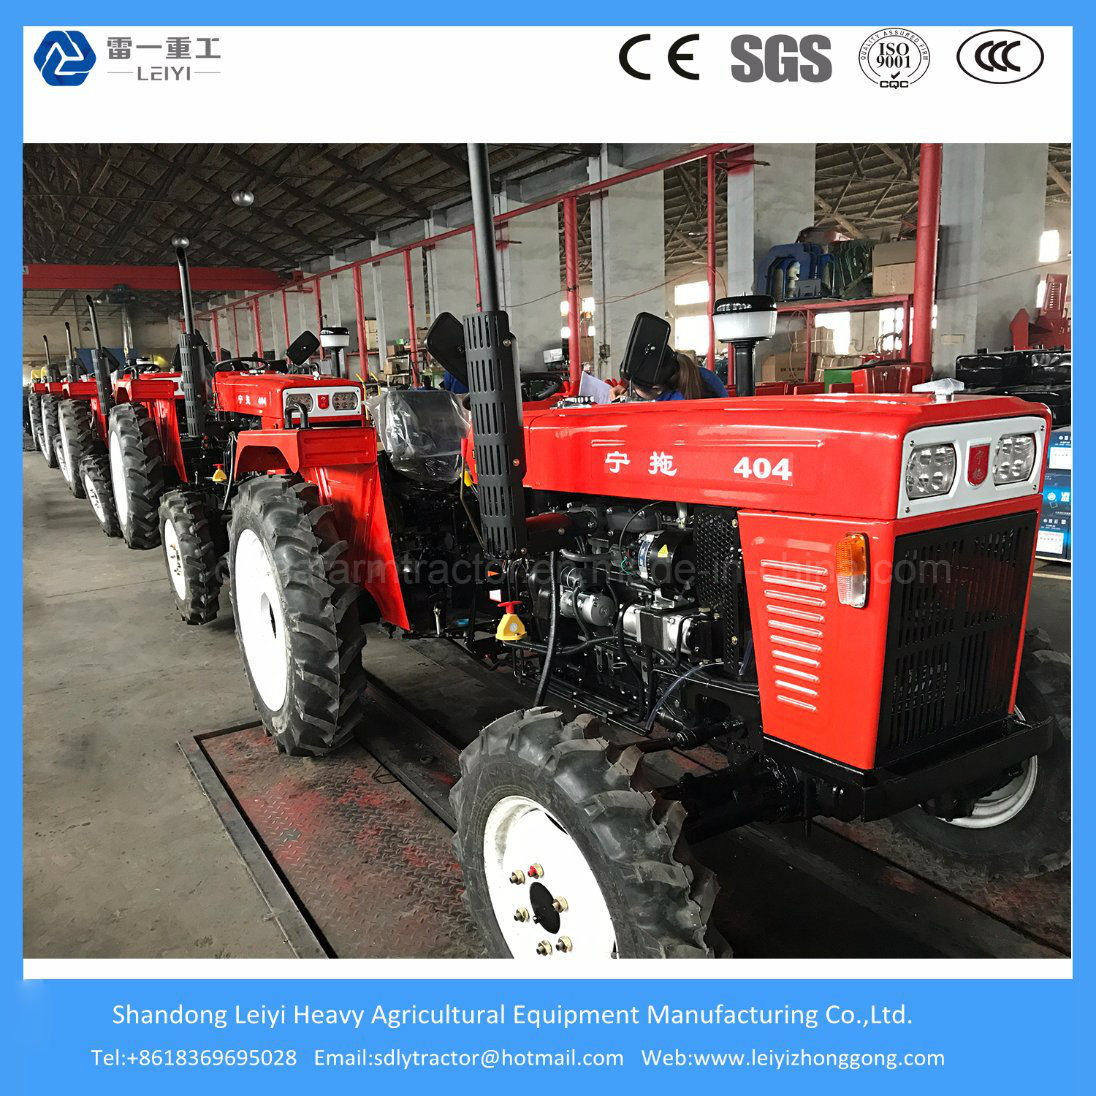 Mini Farming/Agricultural/Compact/Lawn Weifang Tractor with Farm Machinery Diesel (40HP/48HP/55HP)